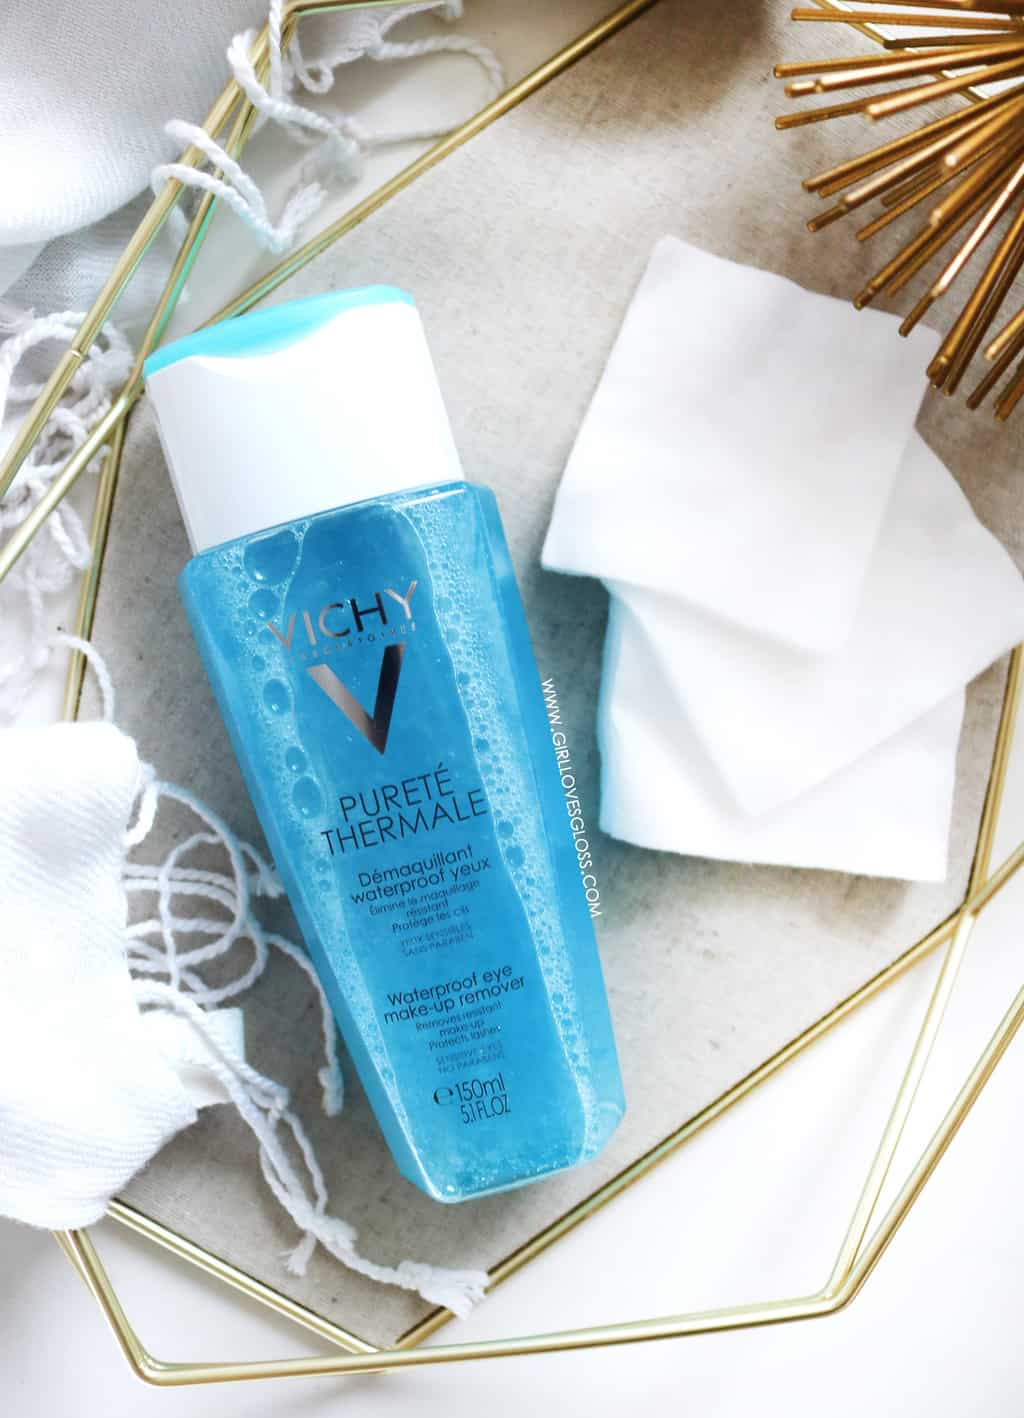 Vichy Purete Thermale Waterproof Makeup Remover